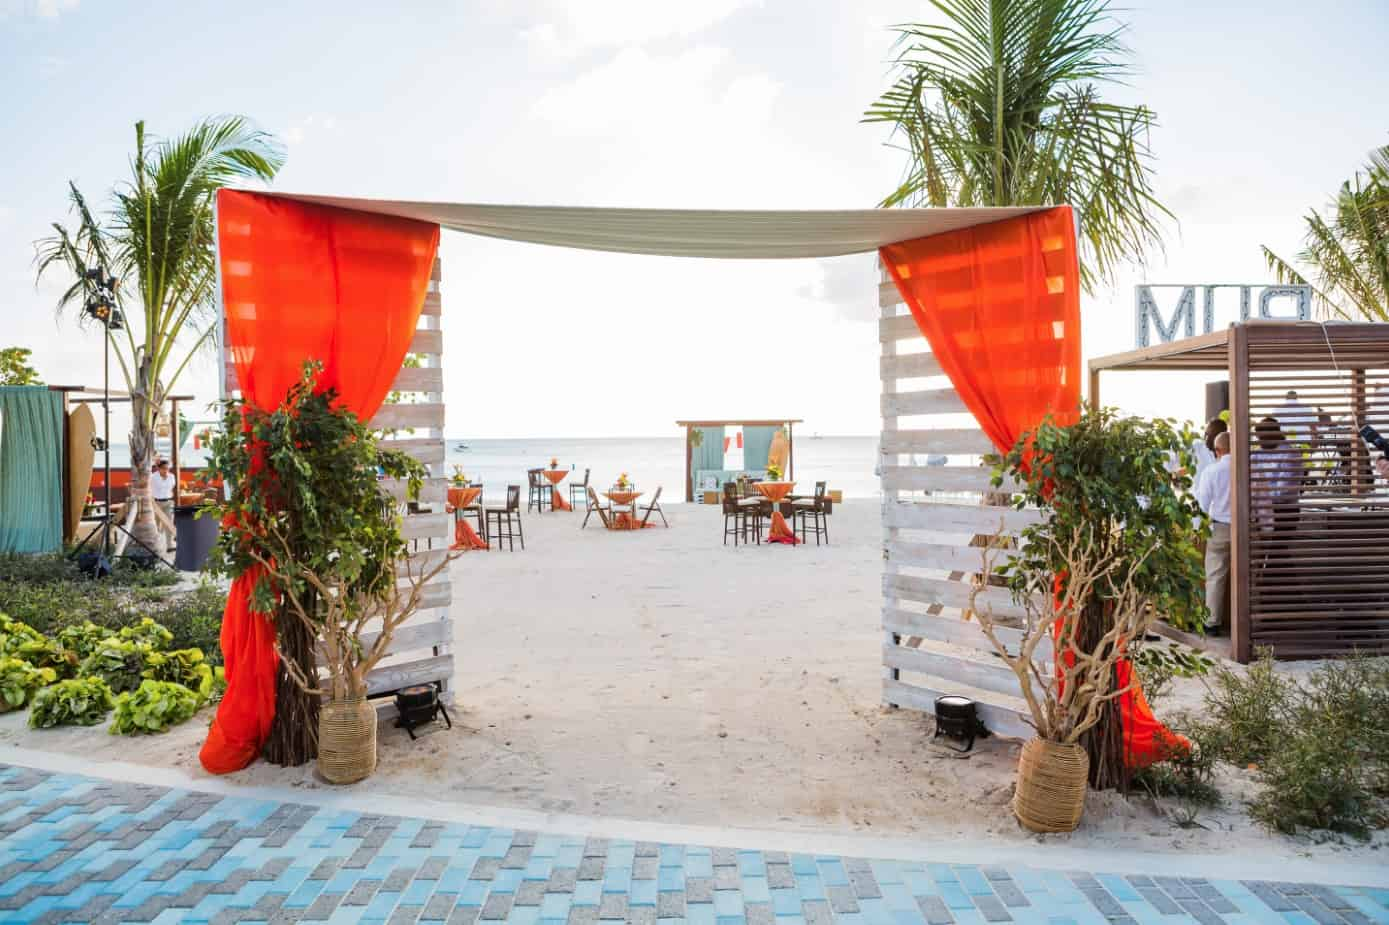 entrance-beach-event-cayman-islands-beach-reception-corporate-event-by-celebrations-ltd-2